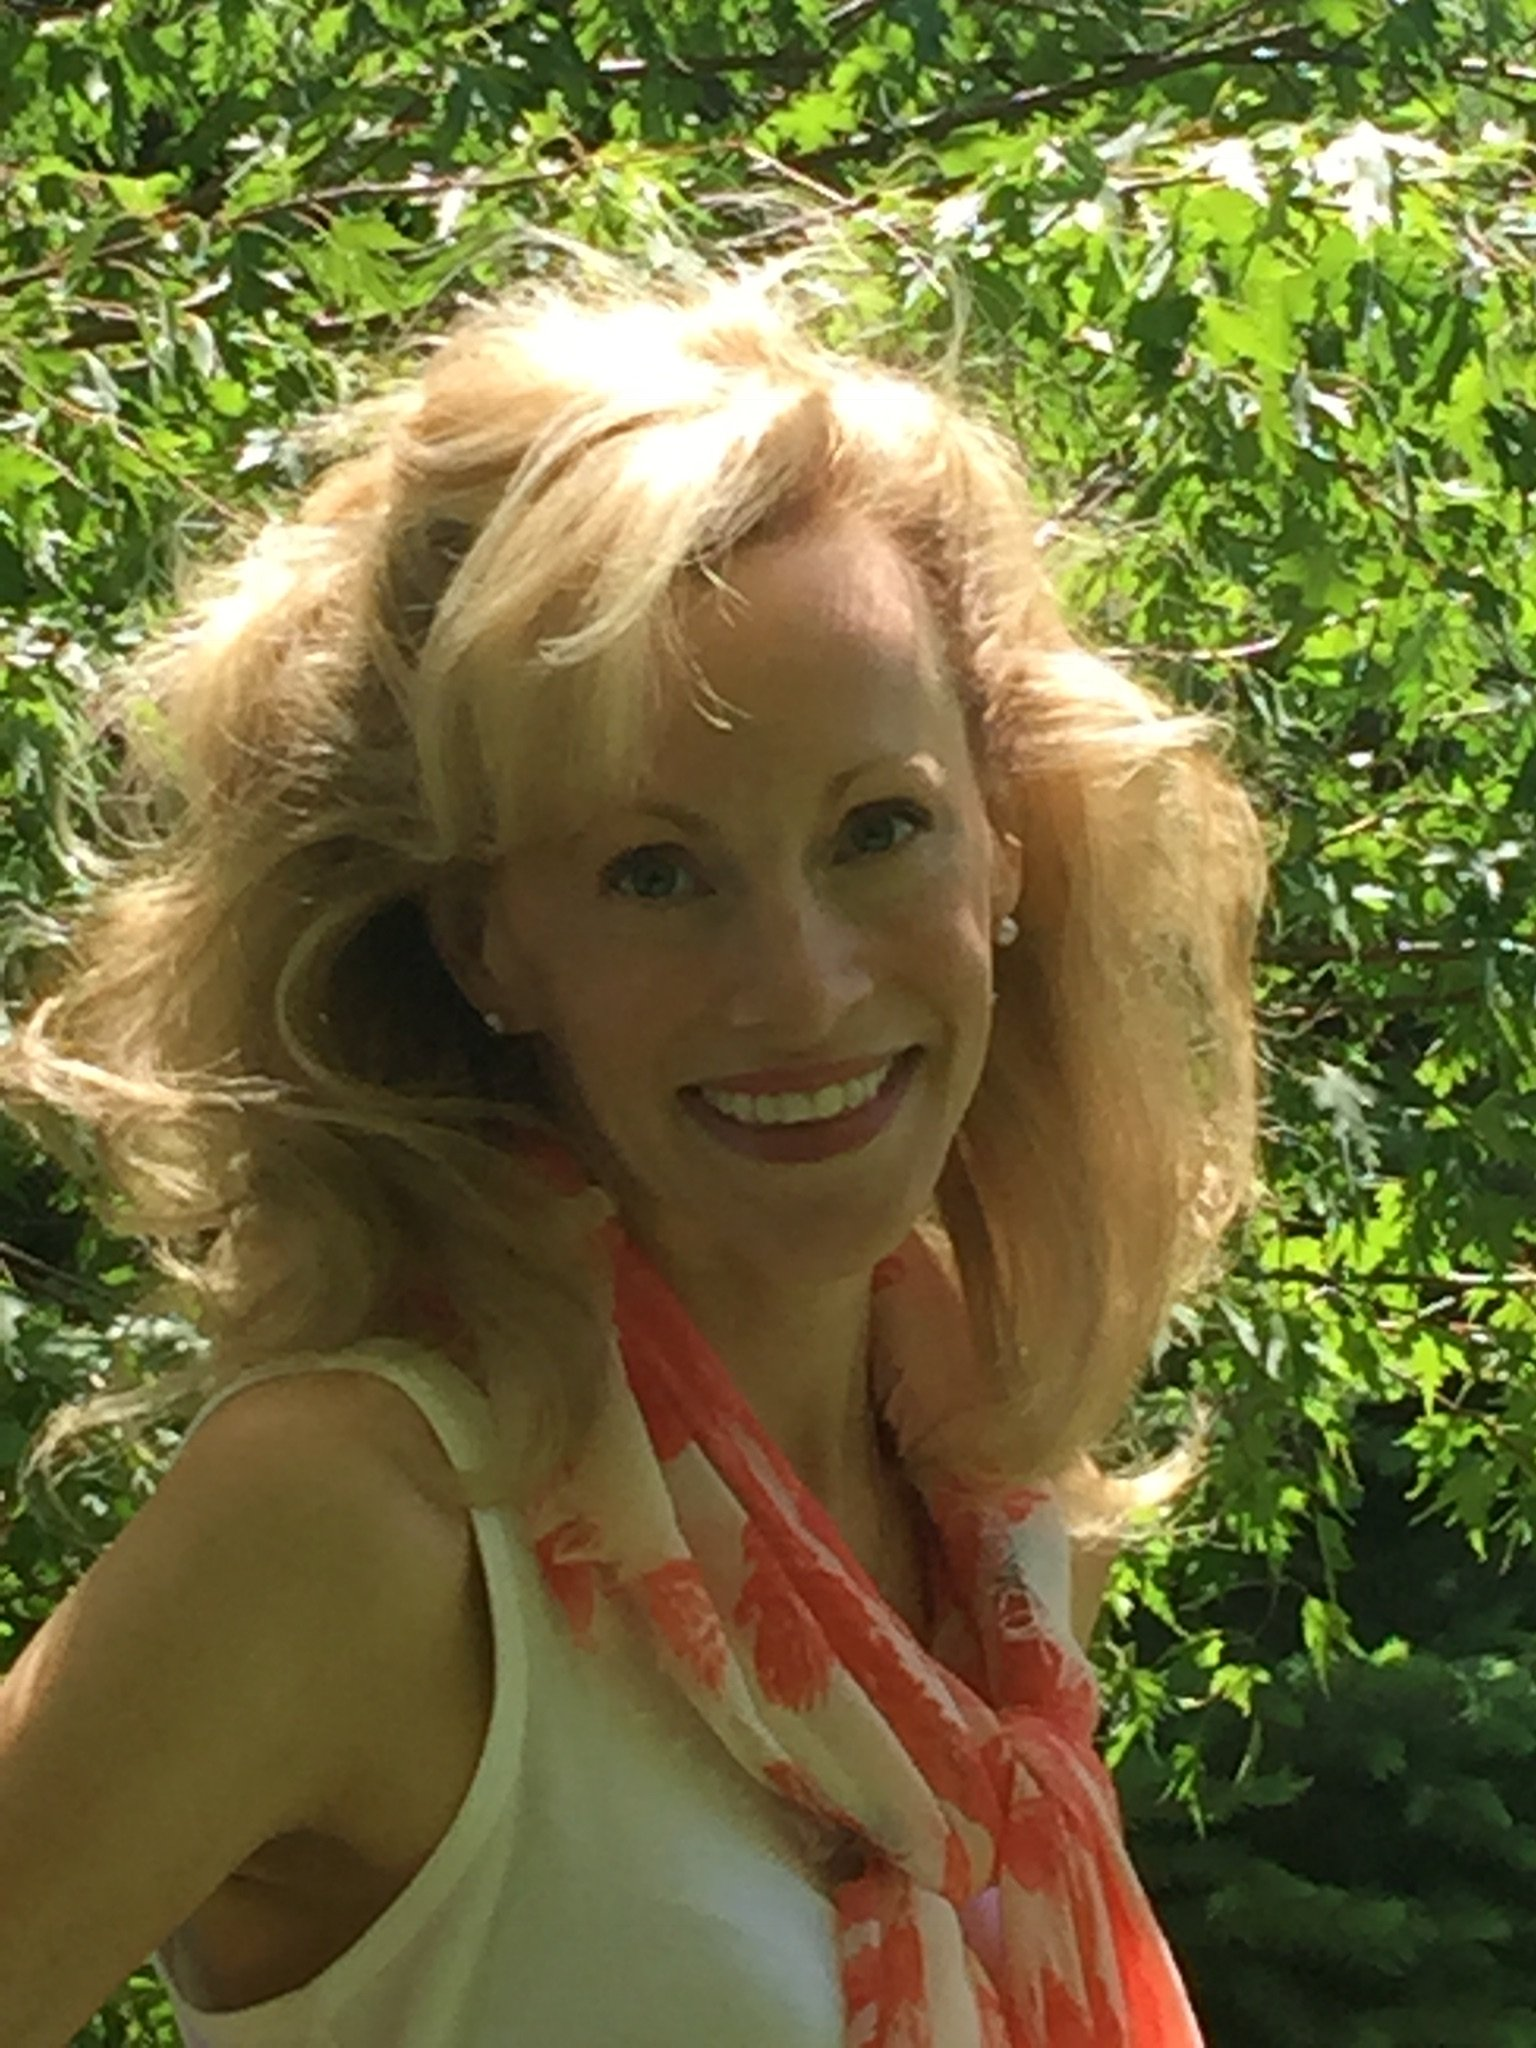 Elizabeth Dianne Aubert, Licensed Professional Clinical Counselor Grand Junction, CO